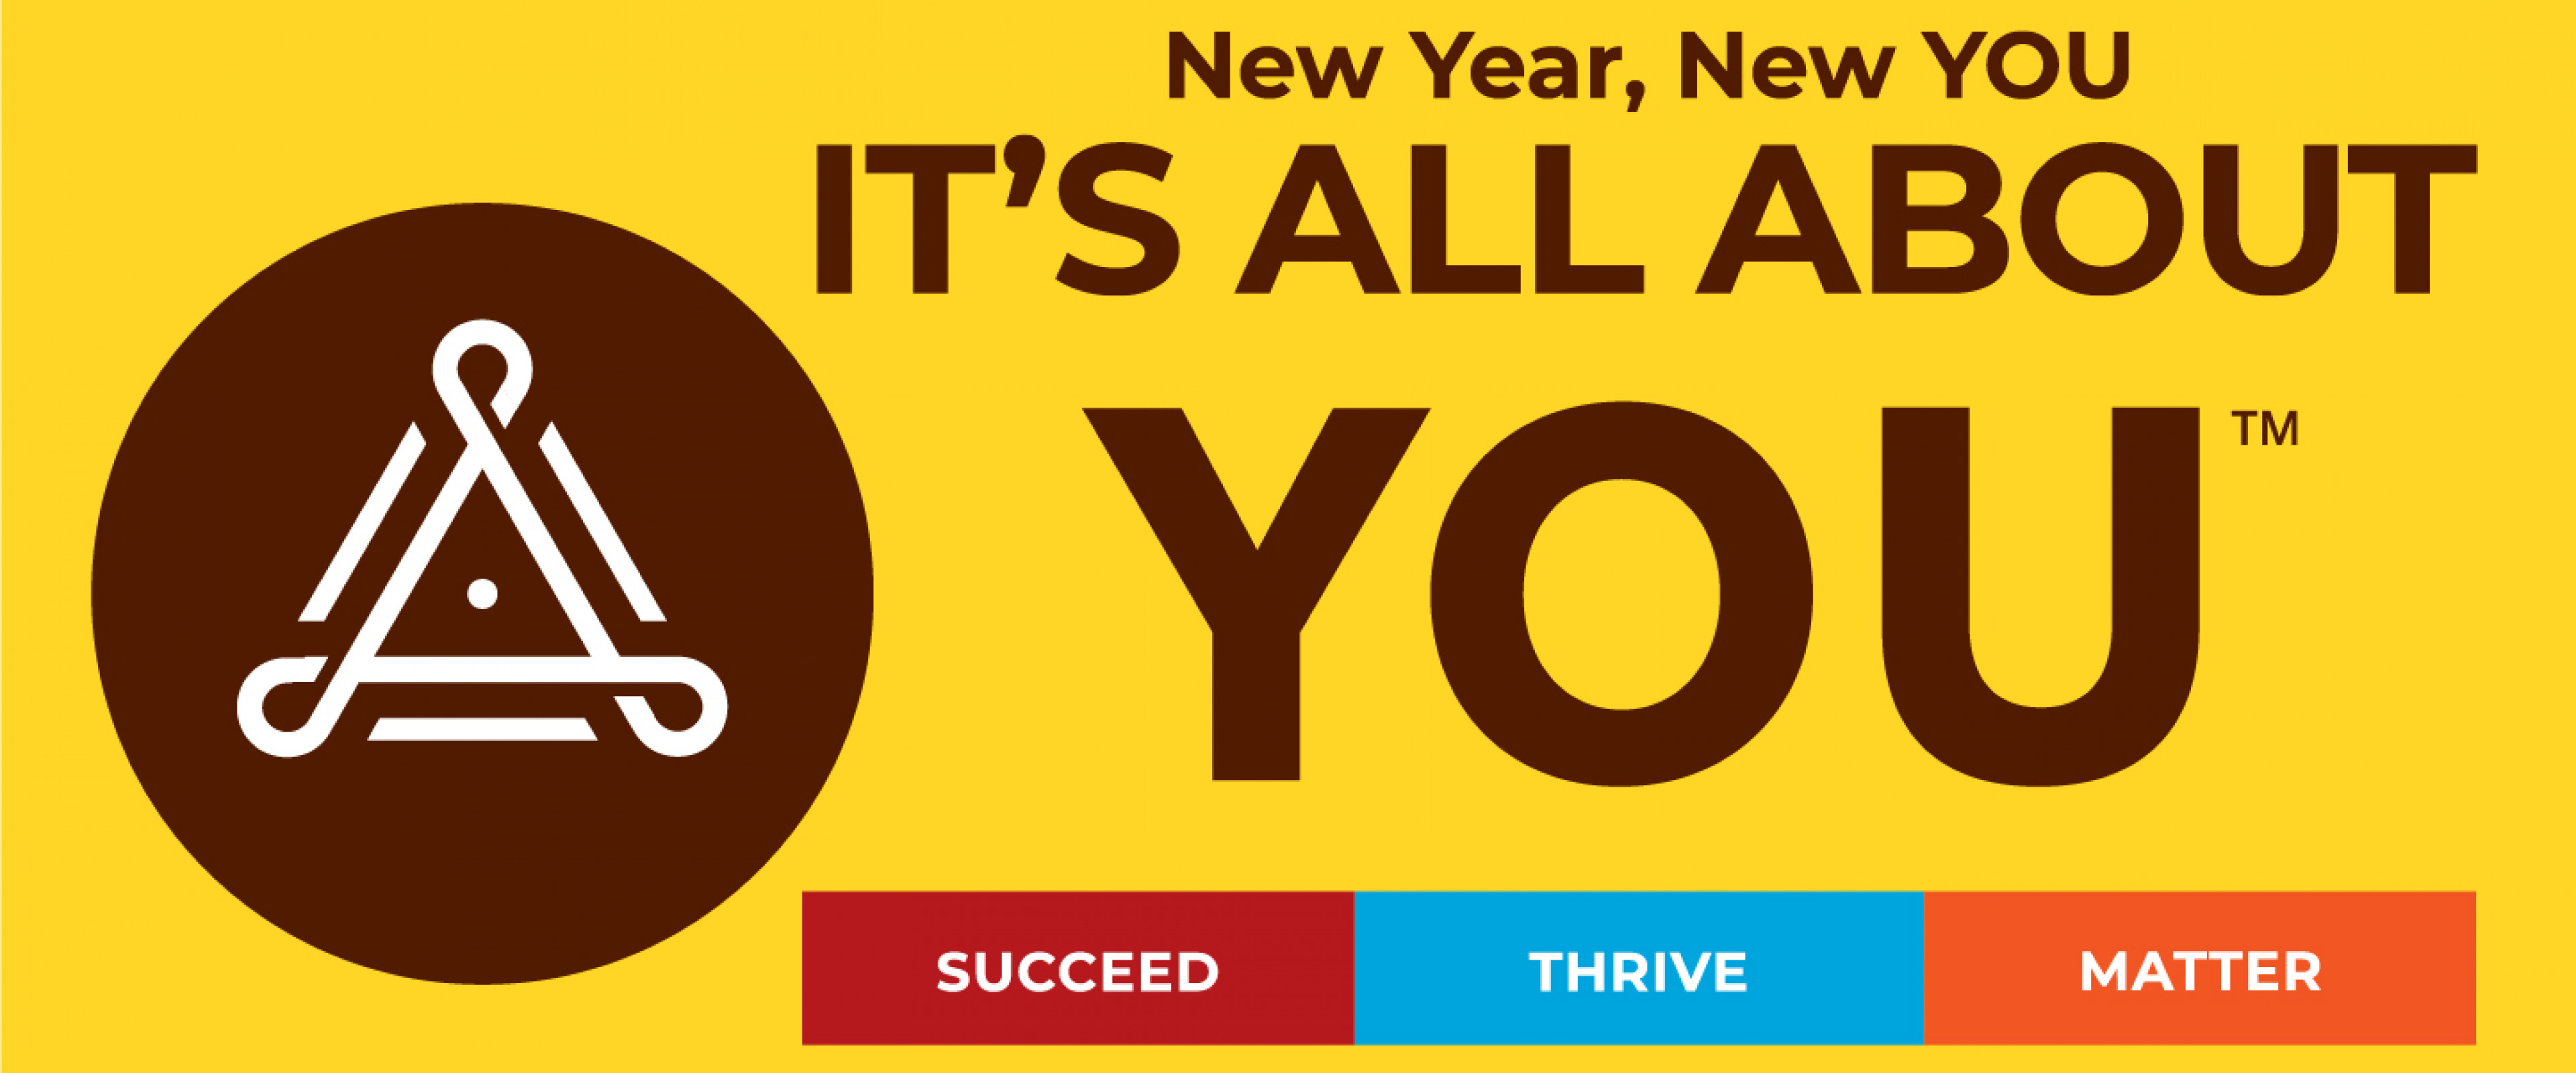 New Year, New YOU: It's All About YOU logo with Succeed, Thrive and Matter in colored boxes below it